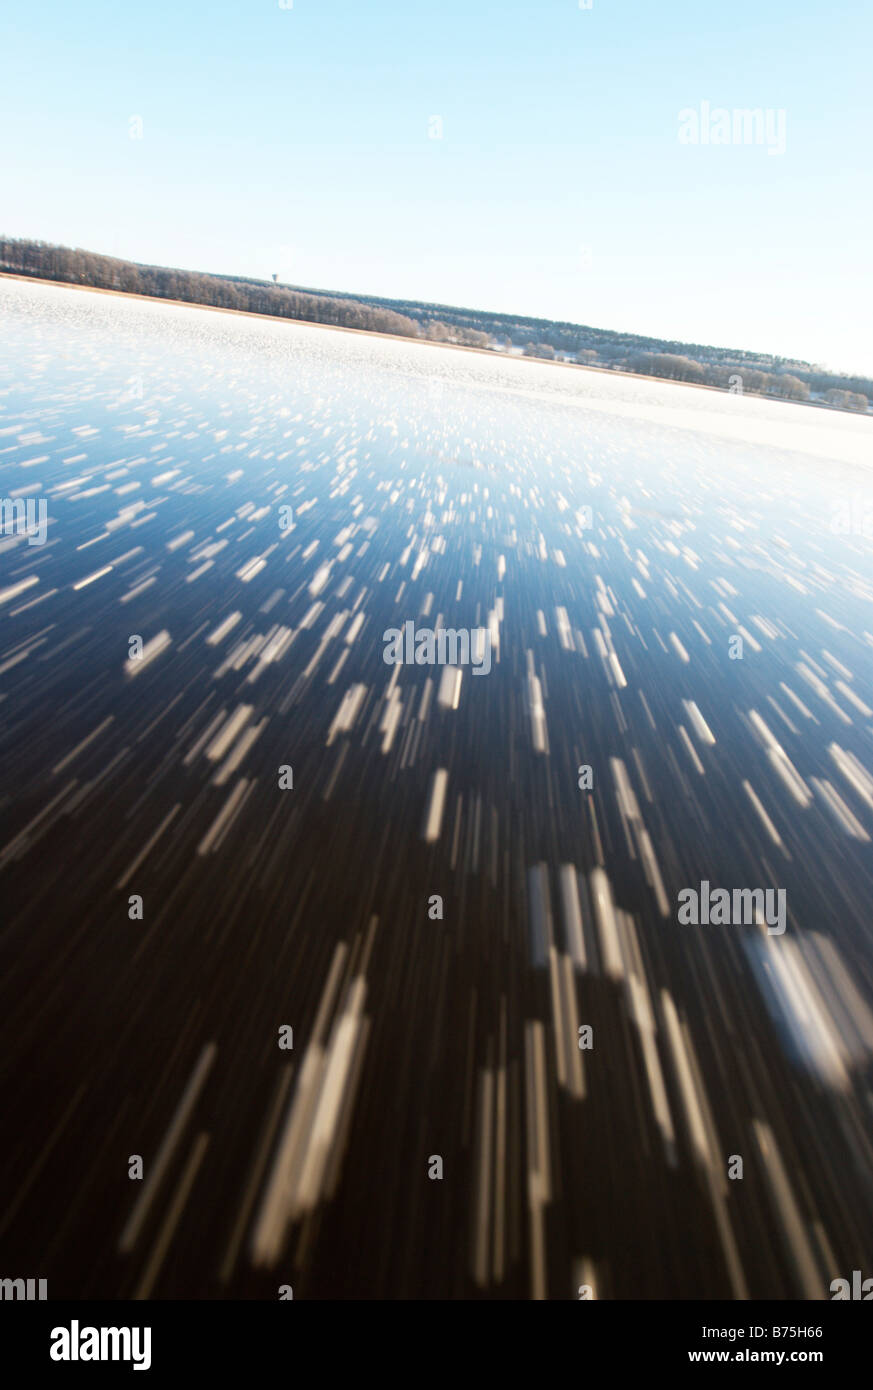 Ice skating on frozen lake, motion blurred ice surface - Stock Image